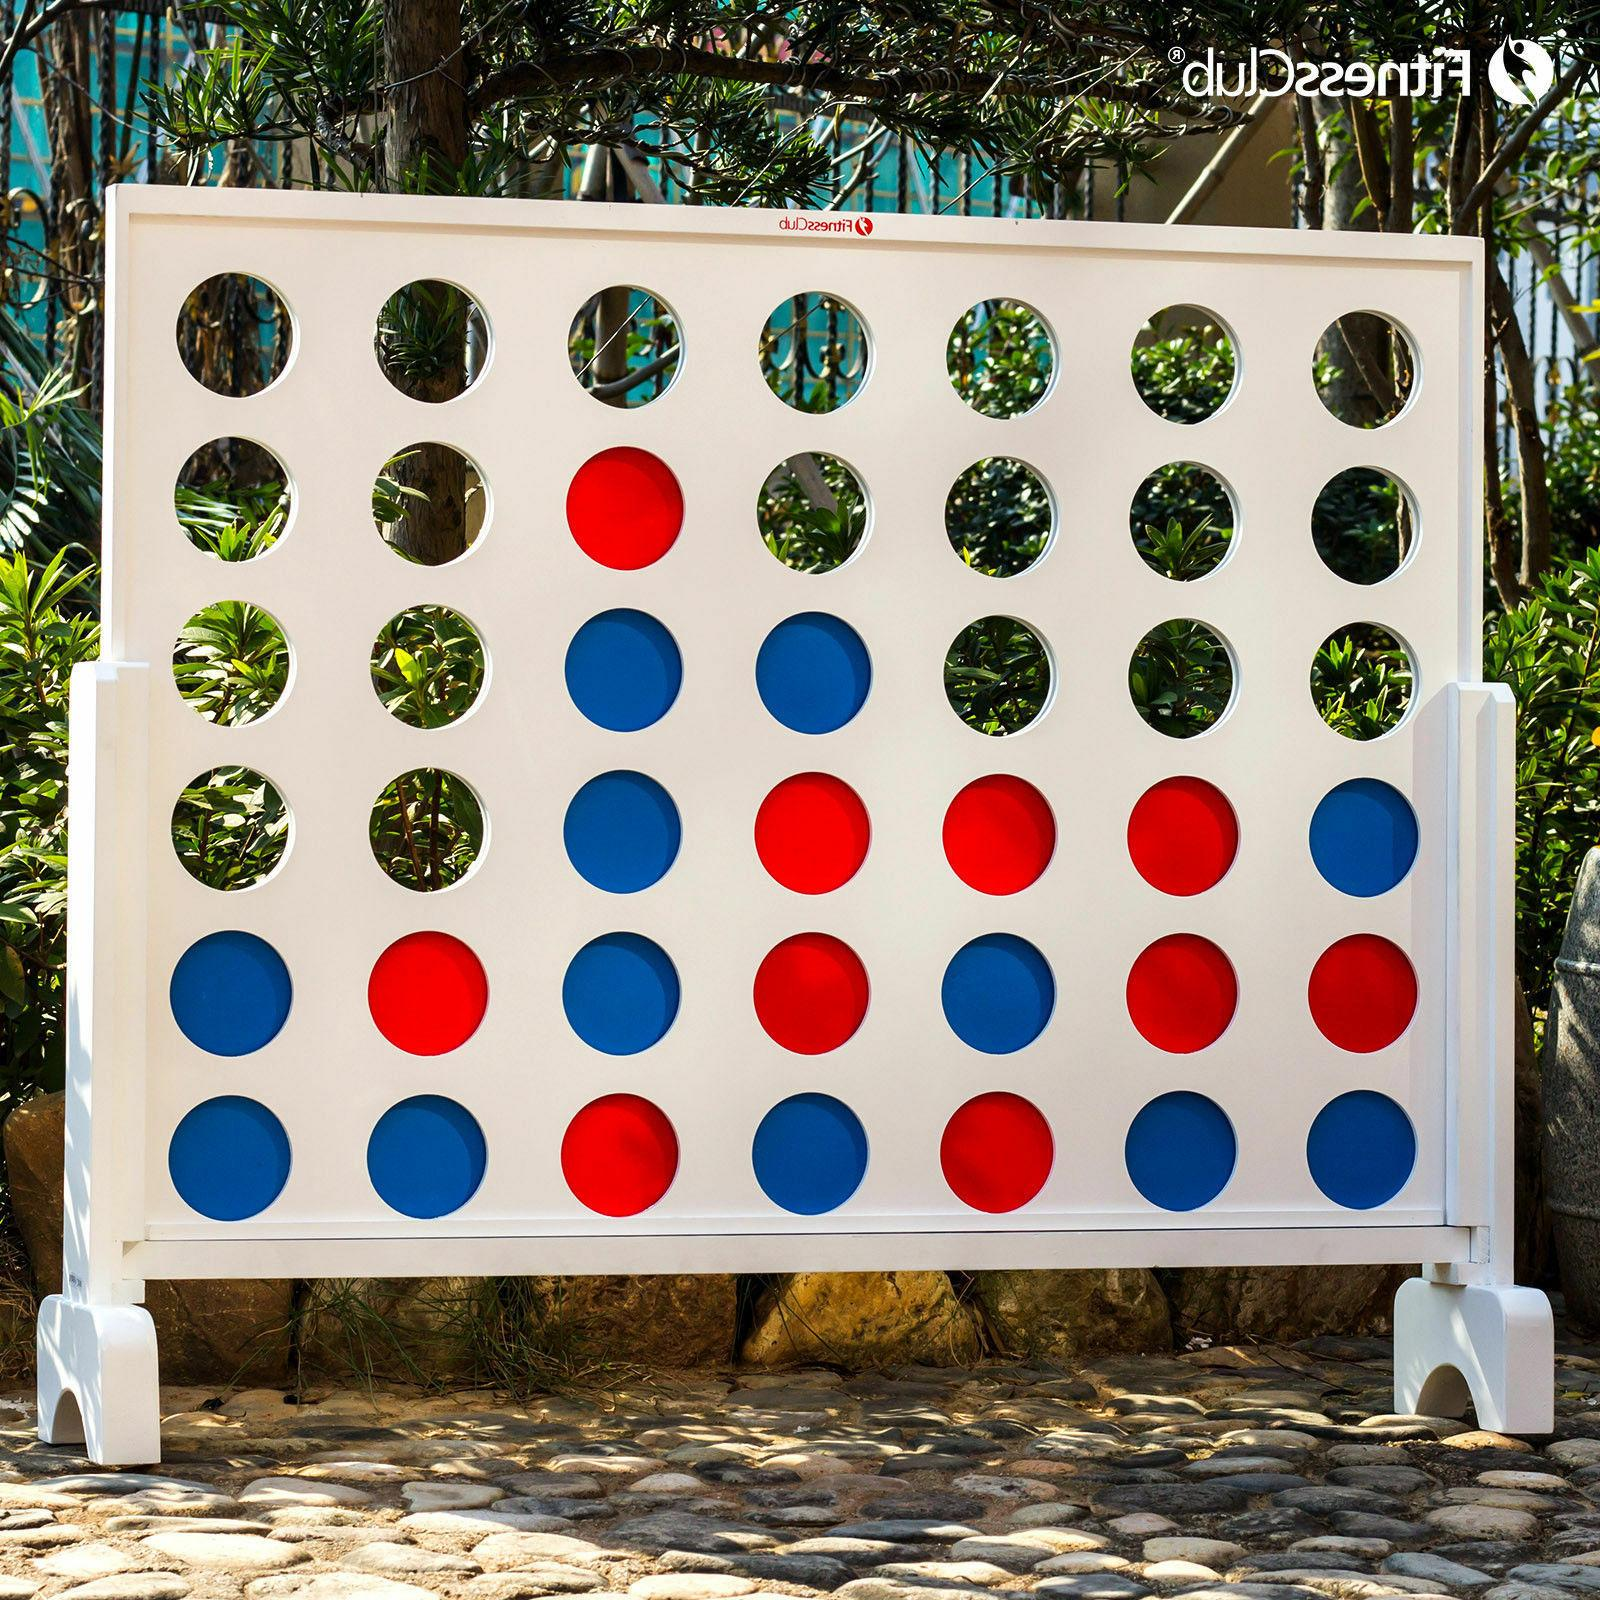 giant connect 4 in a row jumbo